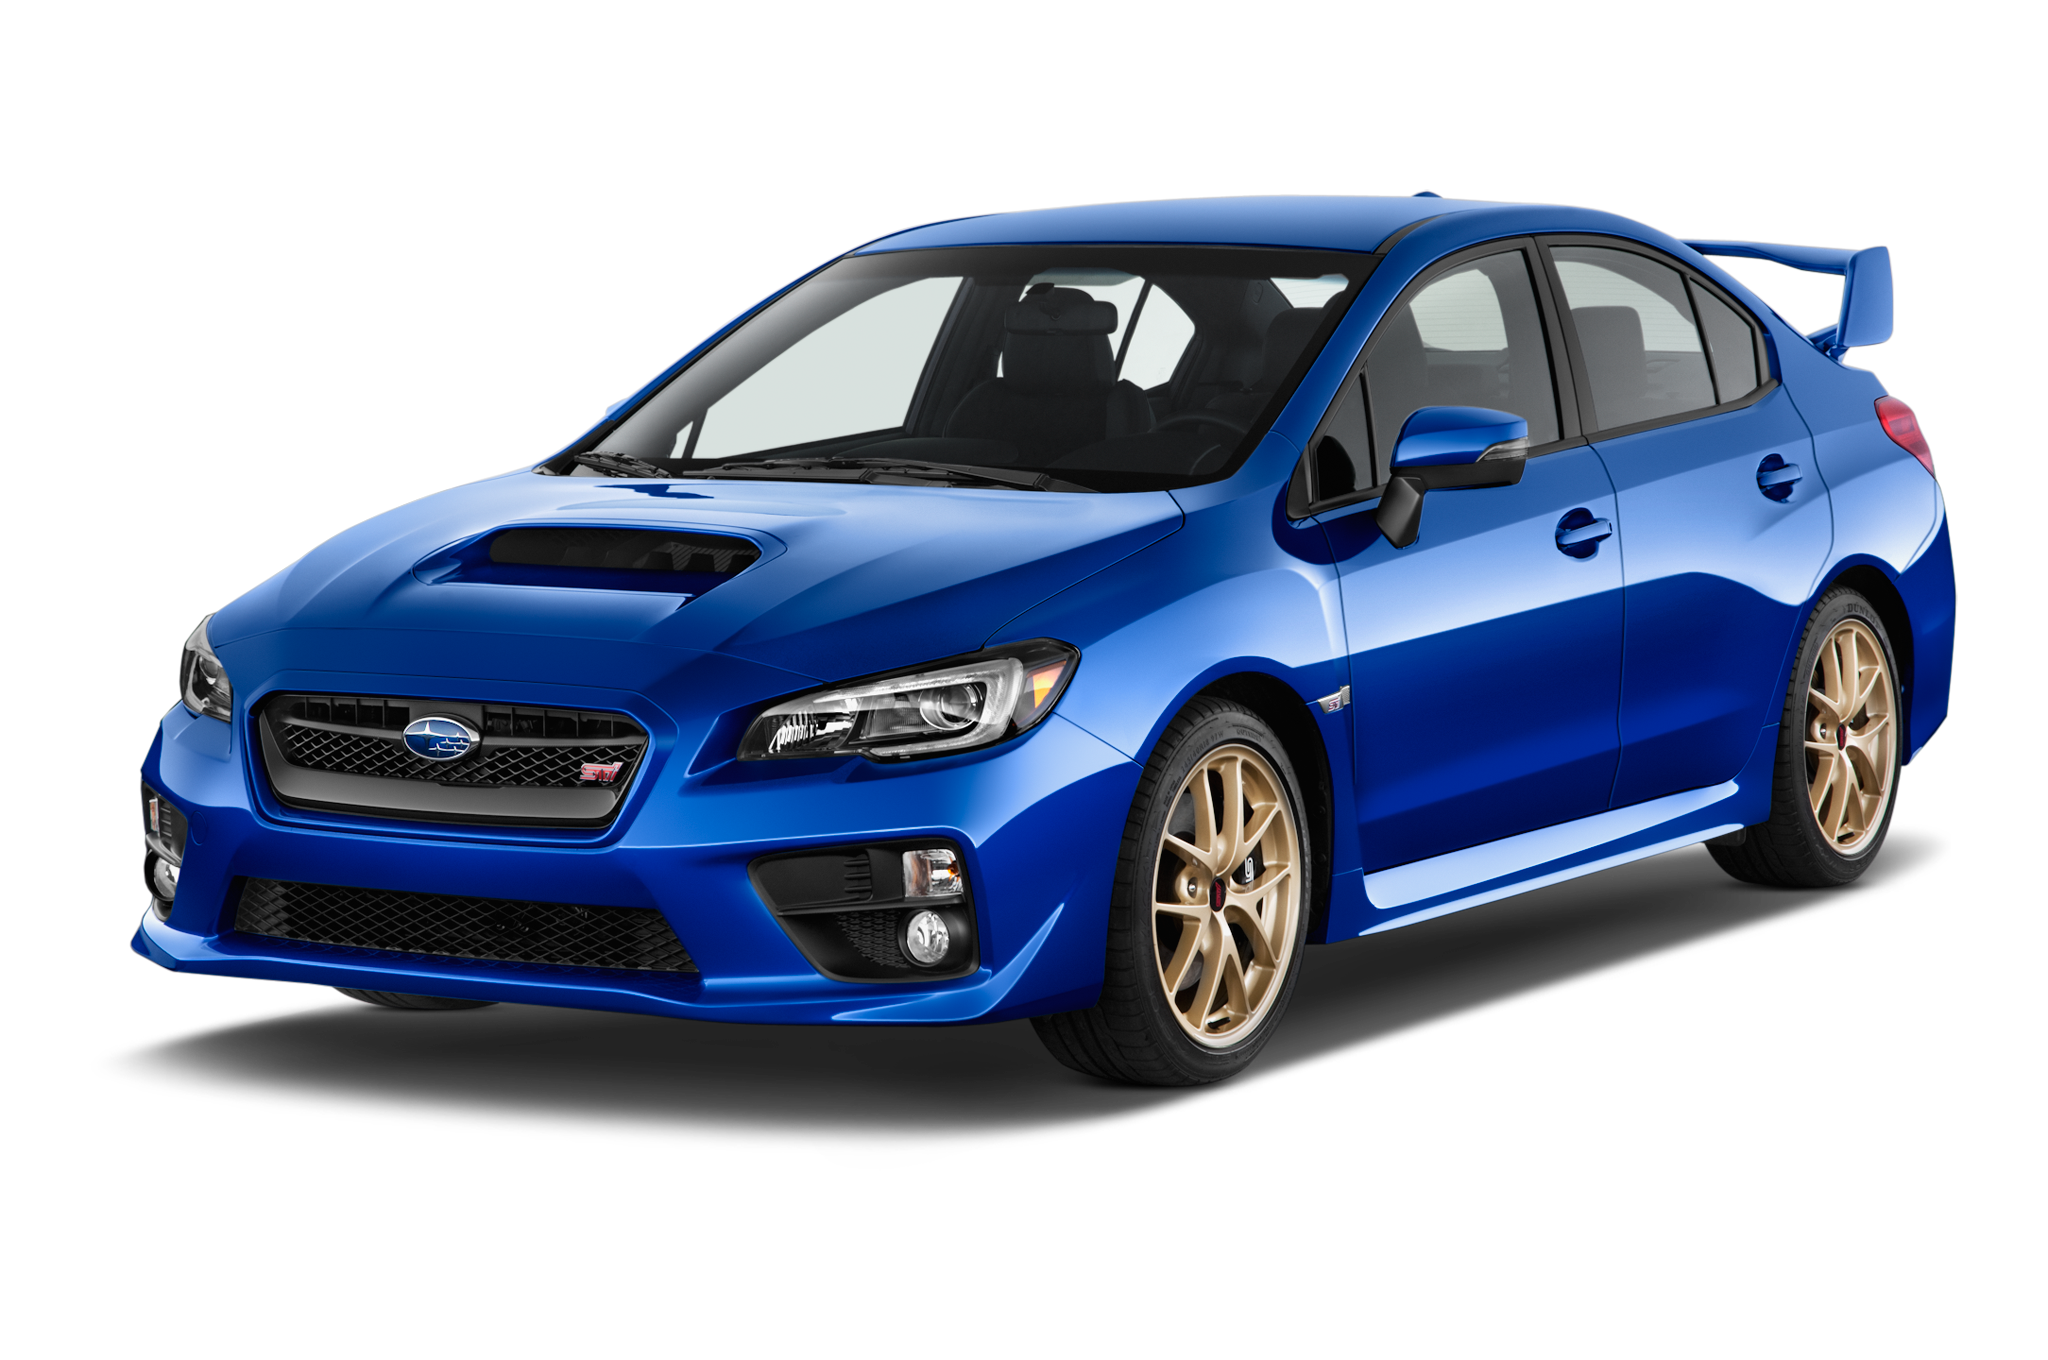 2017 subaru wrx wrx sti 2016 subaru crosstrek se priced. Black Bedroom Furniture Sets. Home Design Ideas